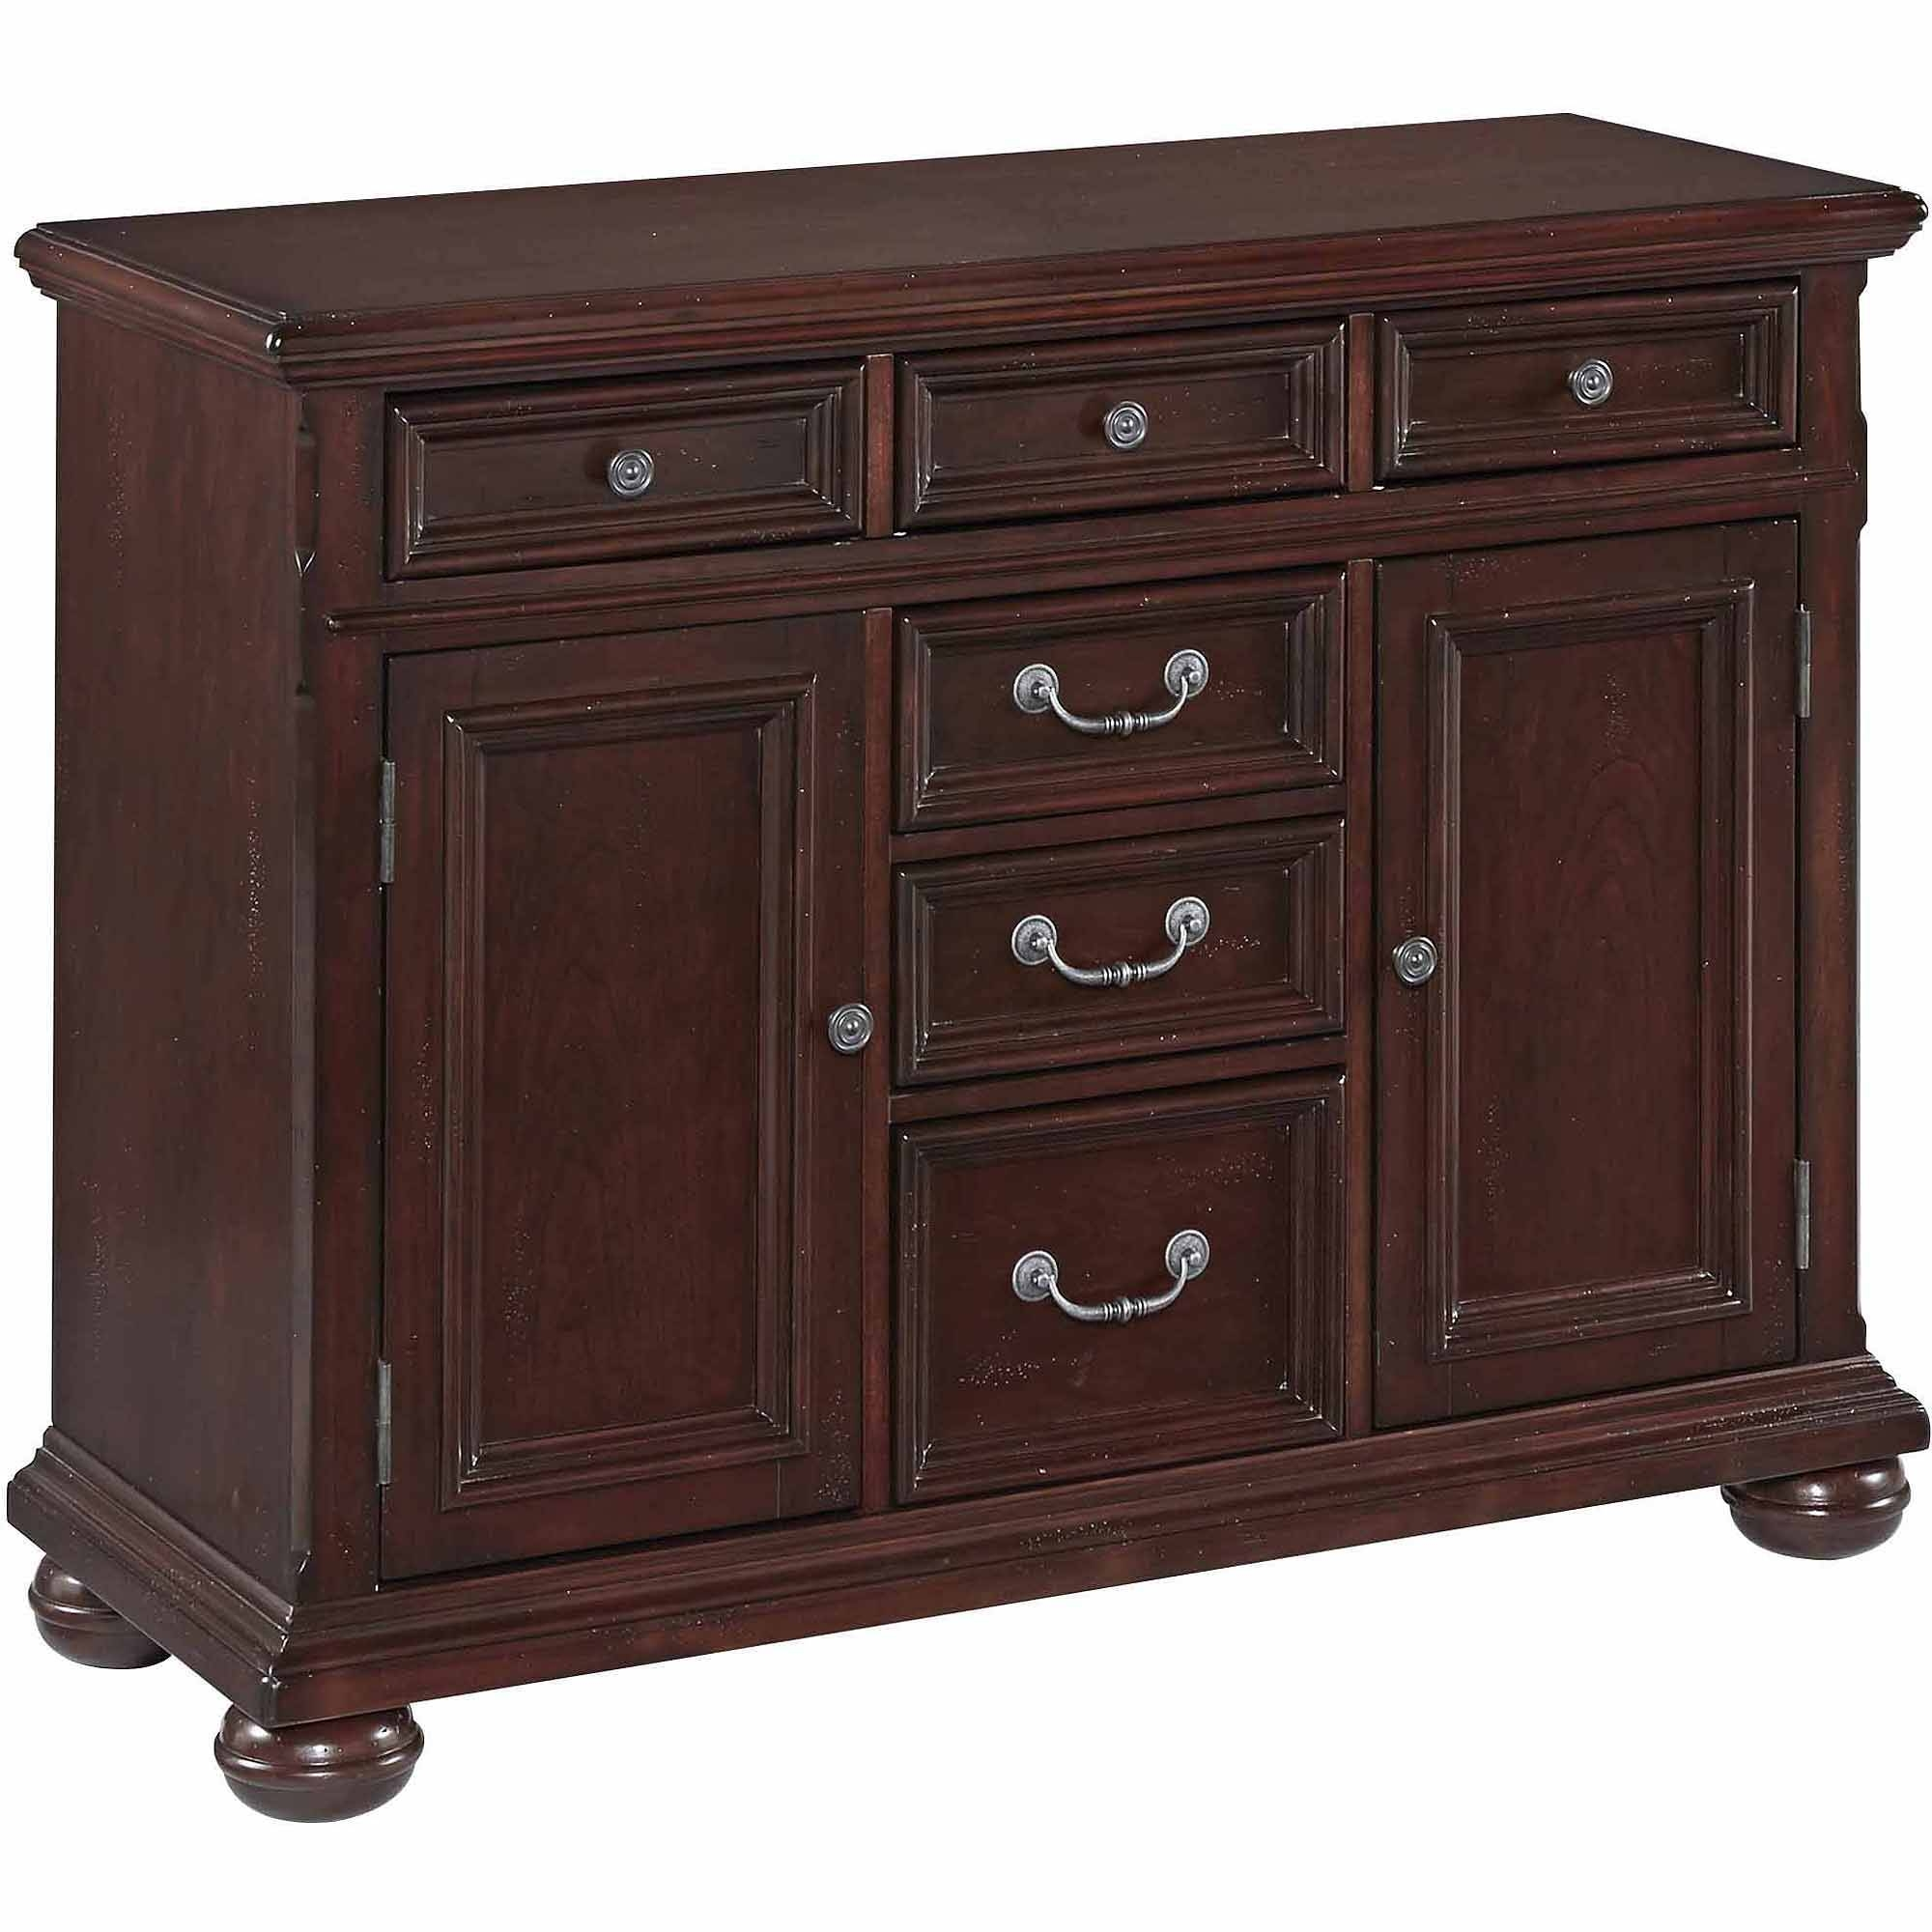 China Cabinet & Buffet Furniture : Kitchen & Dining Furniture with Dark Brown Sideboards (Image 7 of 30)